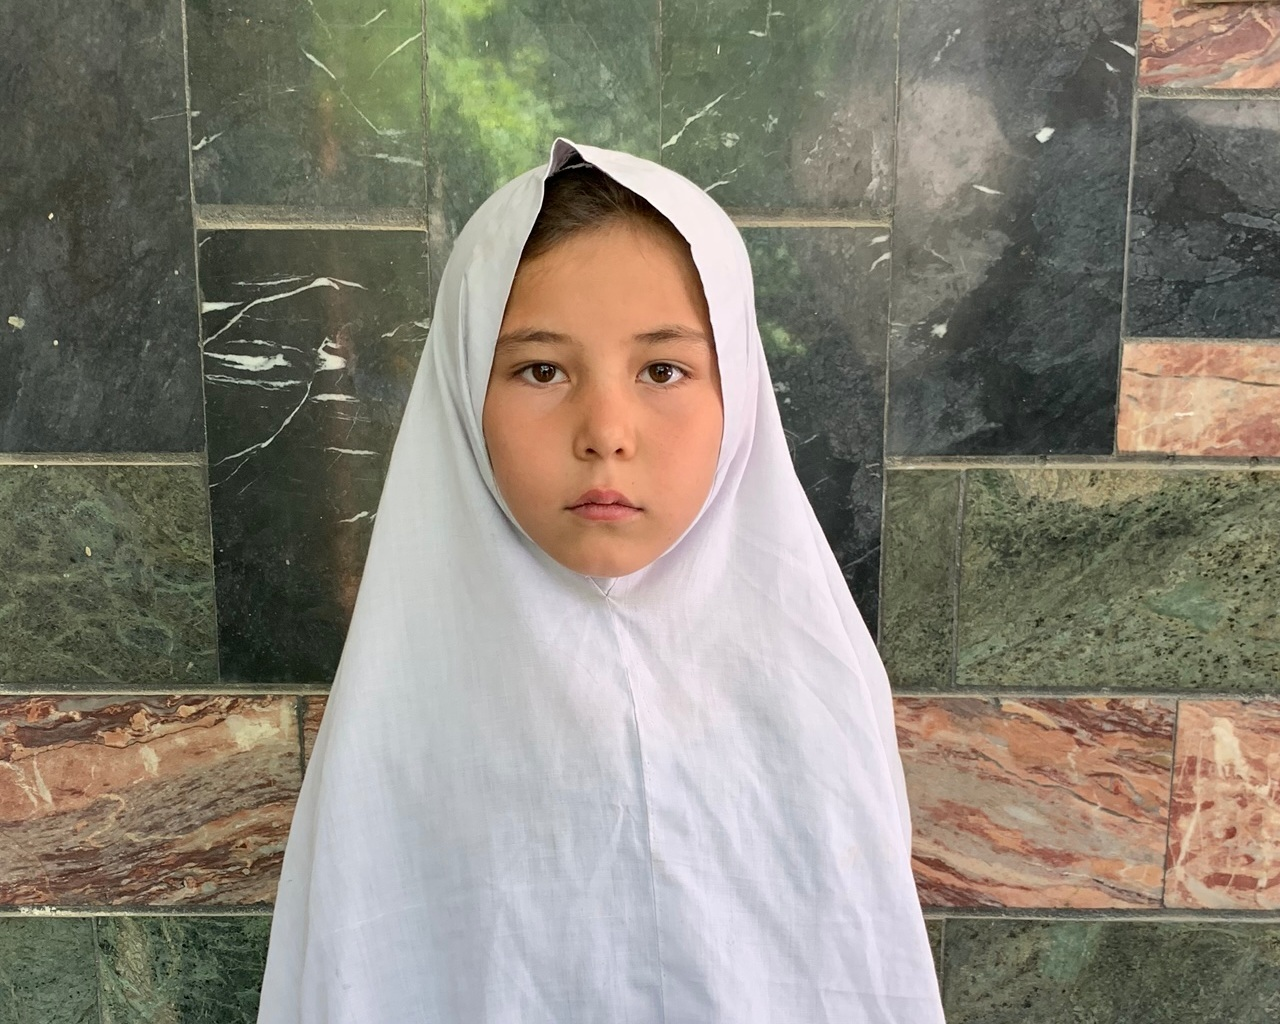 Khirulnasa, Age 8 - Khirulnasa has 1 sibling. Her mother does not work and her father is a day laborer.BE KHIRULNASA'S PARTNER >